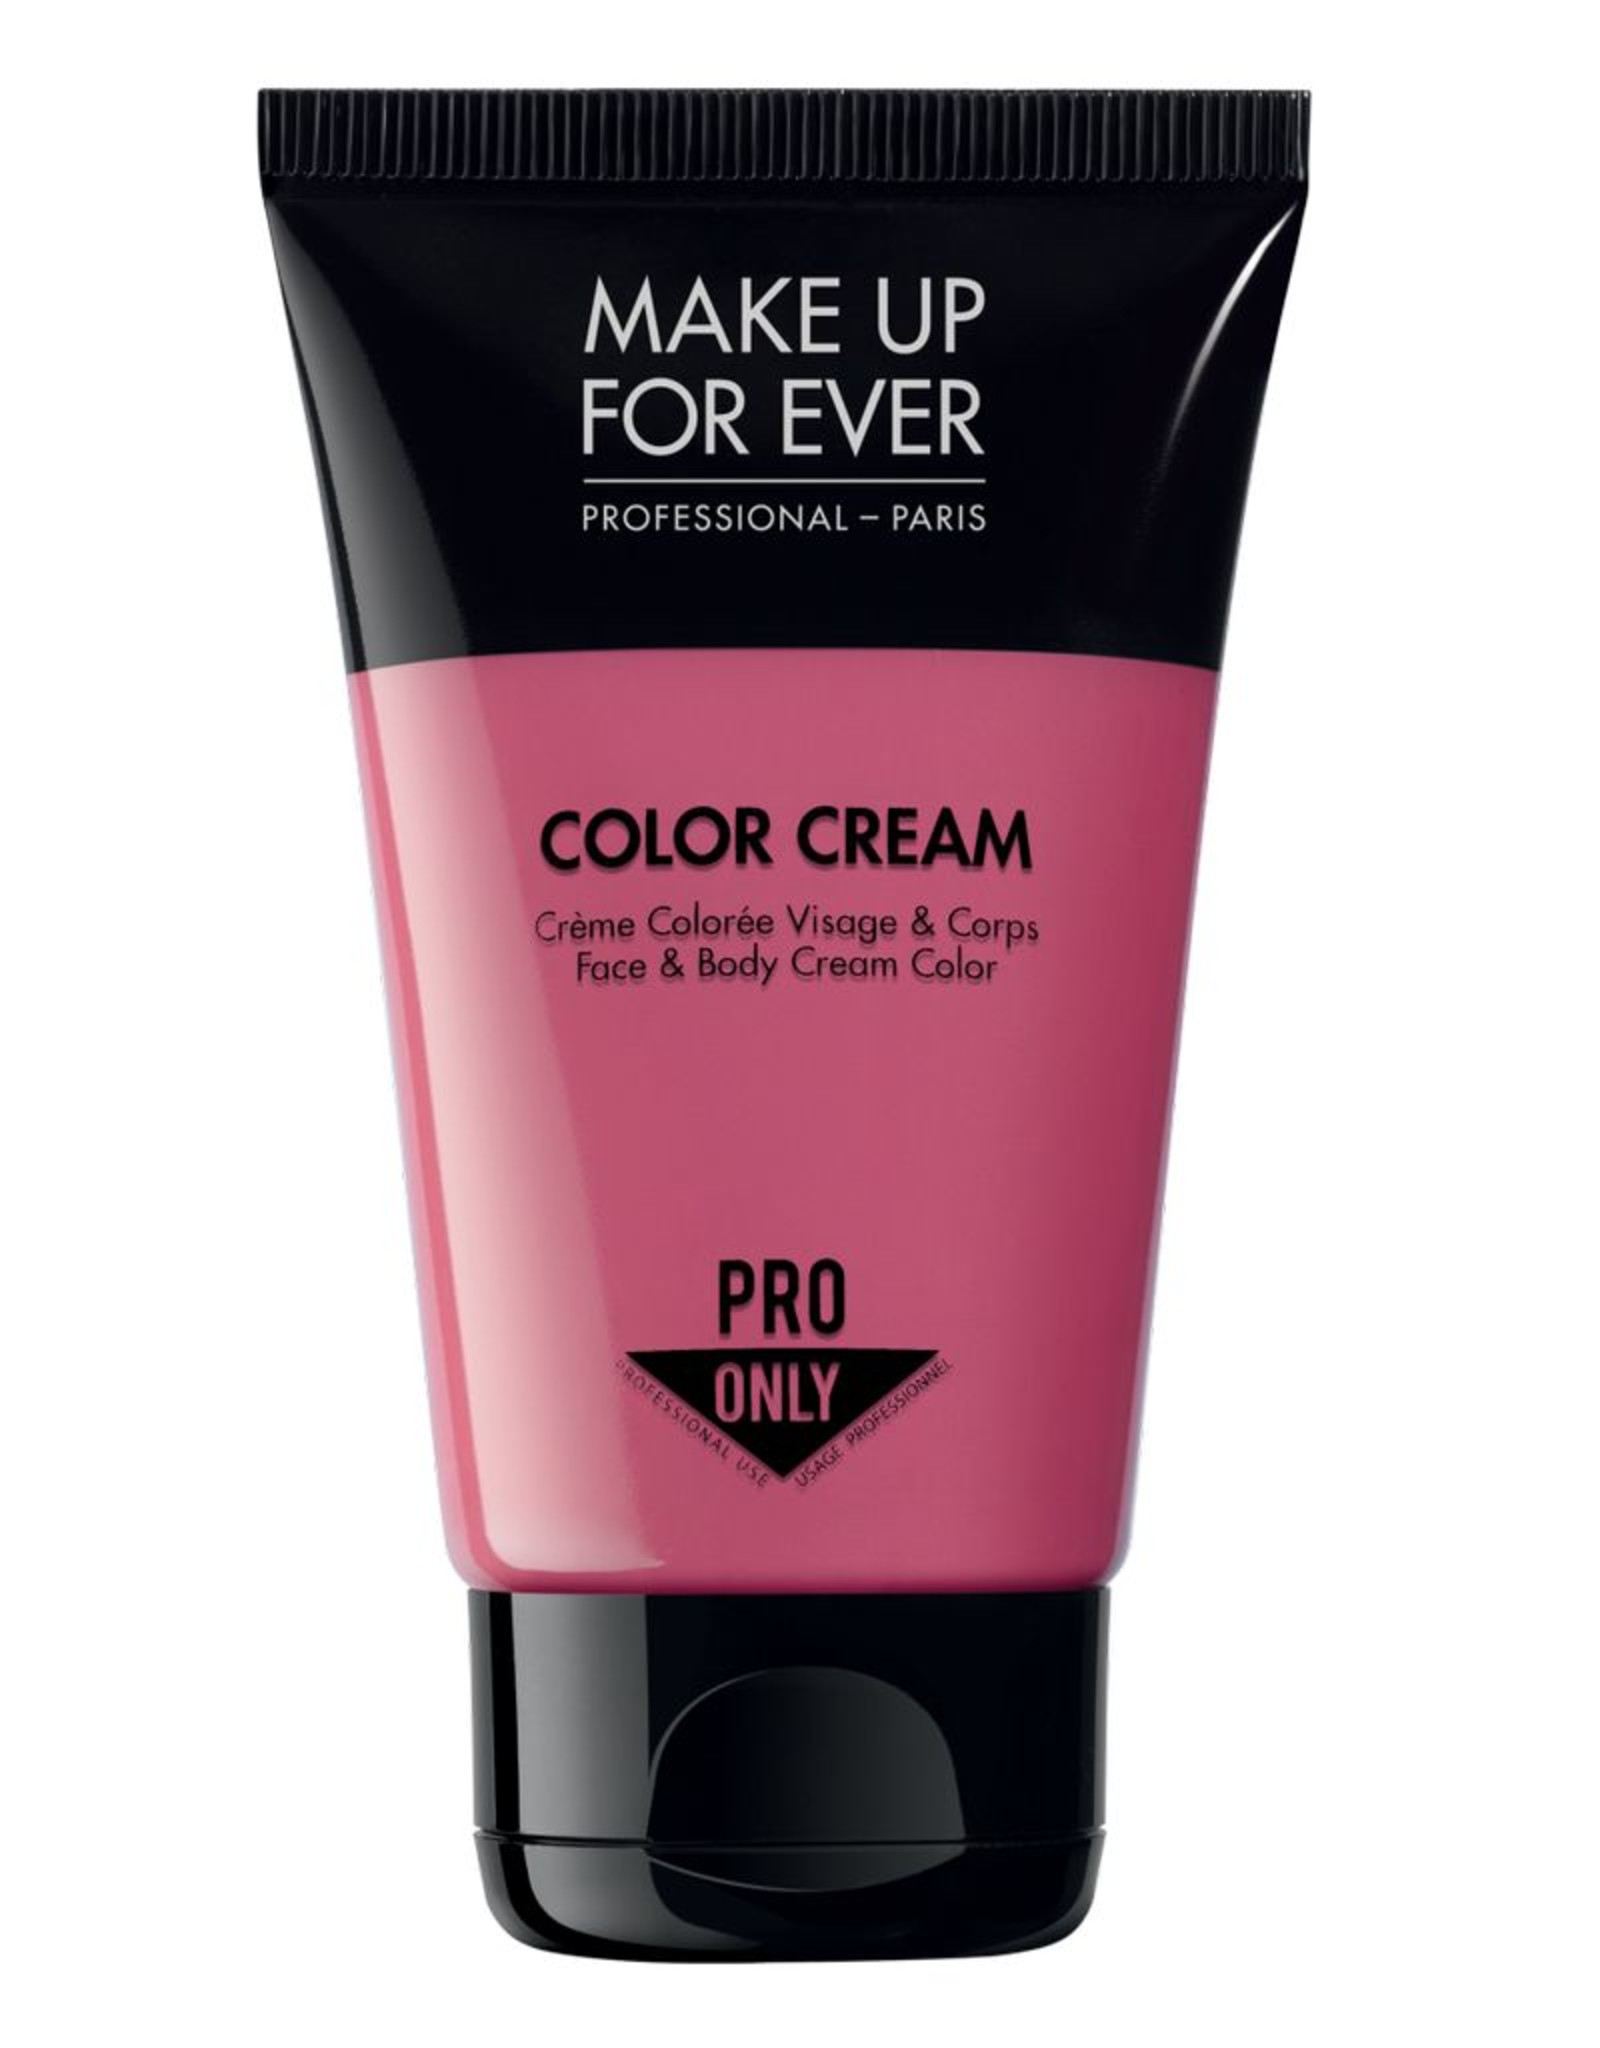 MUFE COLOR CREAM 50ml N508 rose / pink